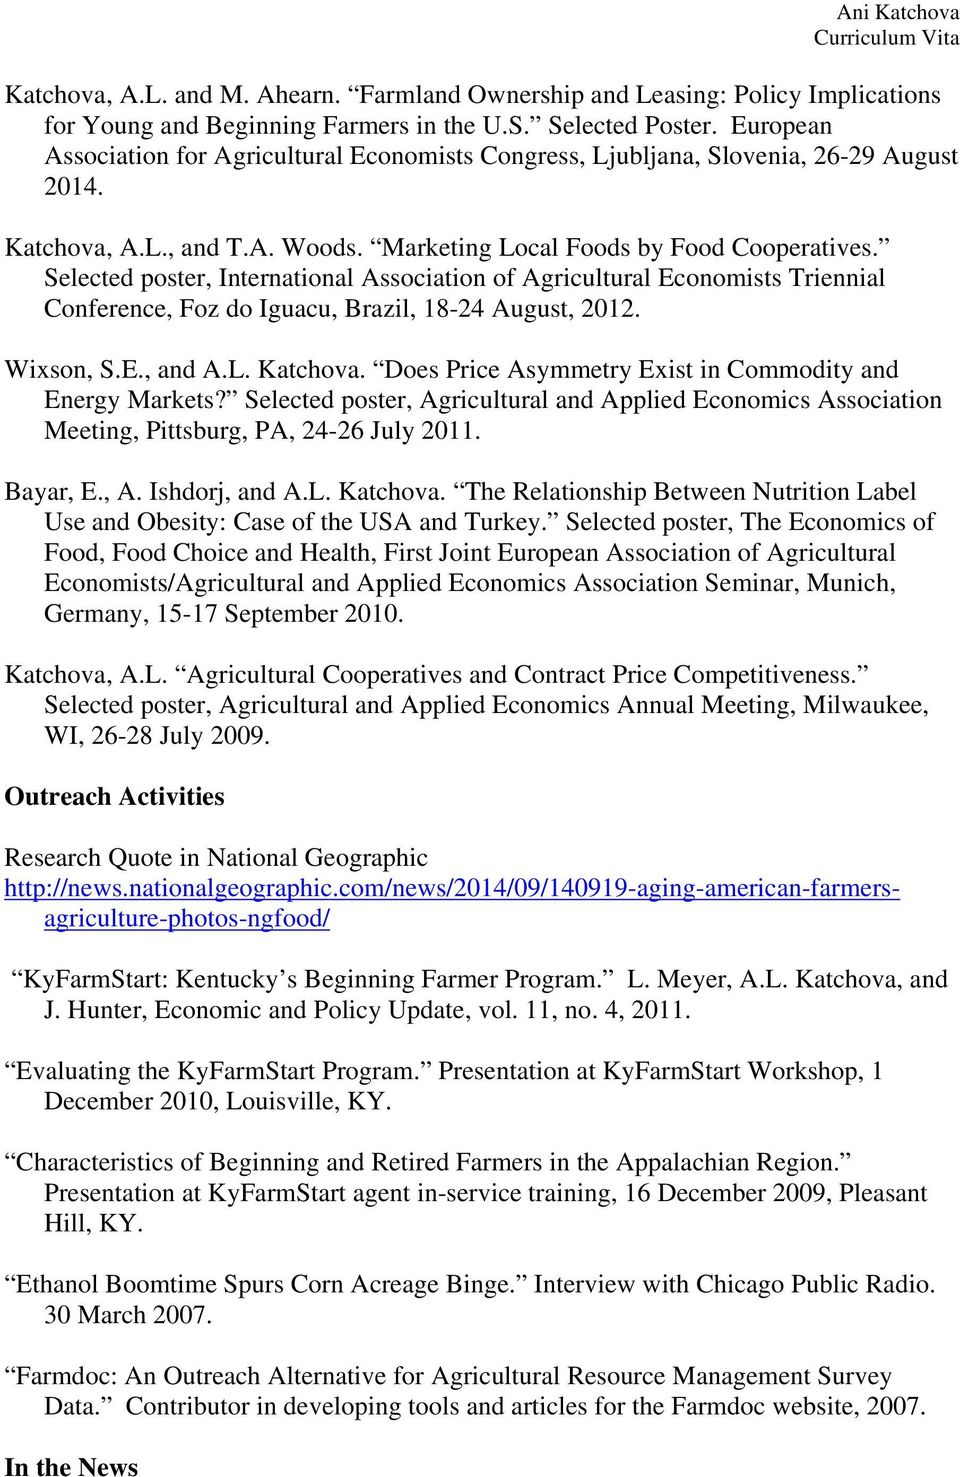 Selected poster, International Association of Agricultural Economists Triennial Conference, Foz do Iguacu, Brazil, 18-24 August, 2012. Wixson, S.E., and A.L. Katchova.